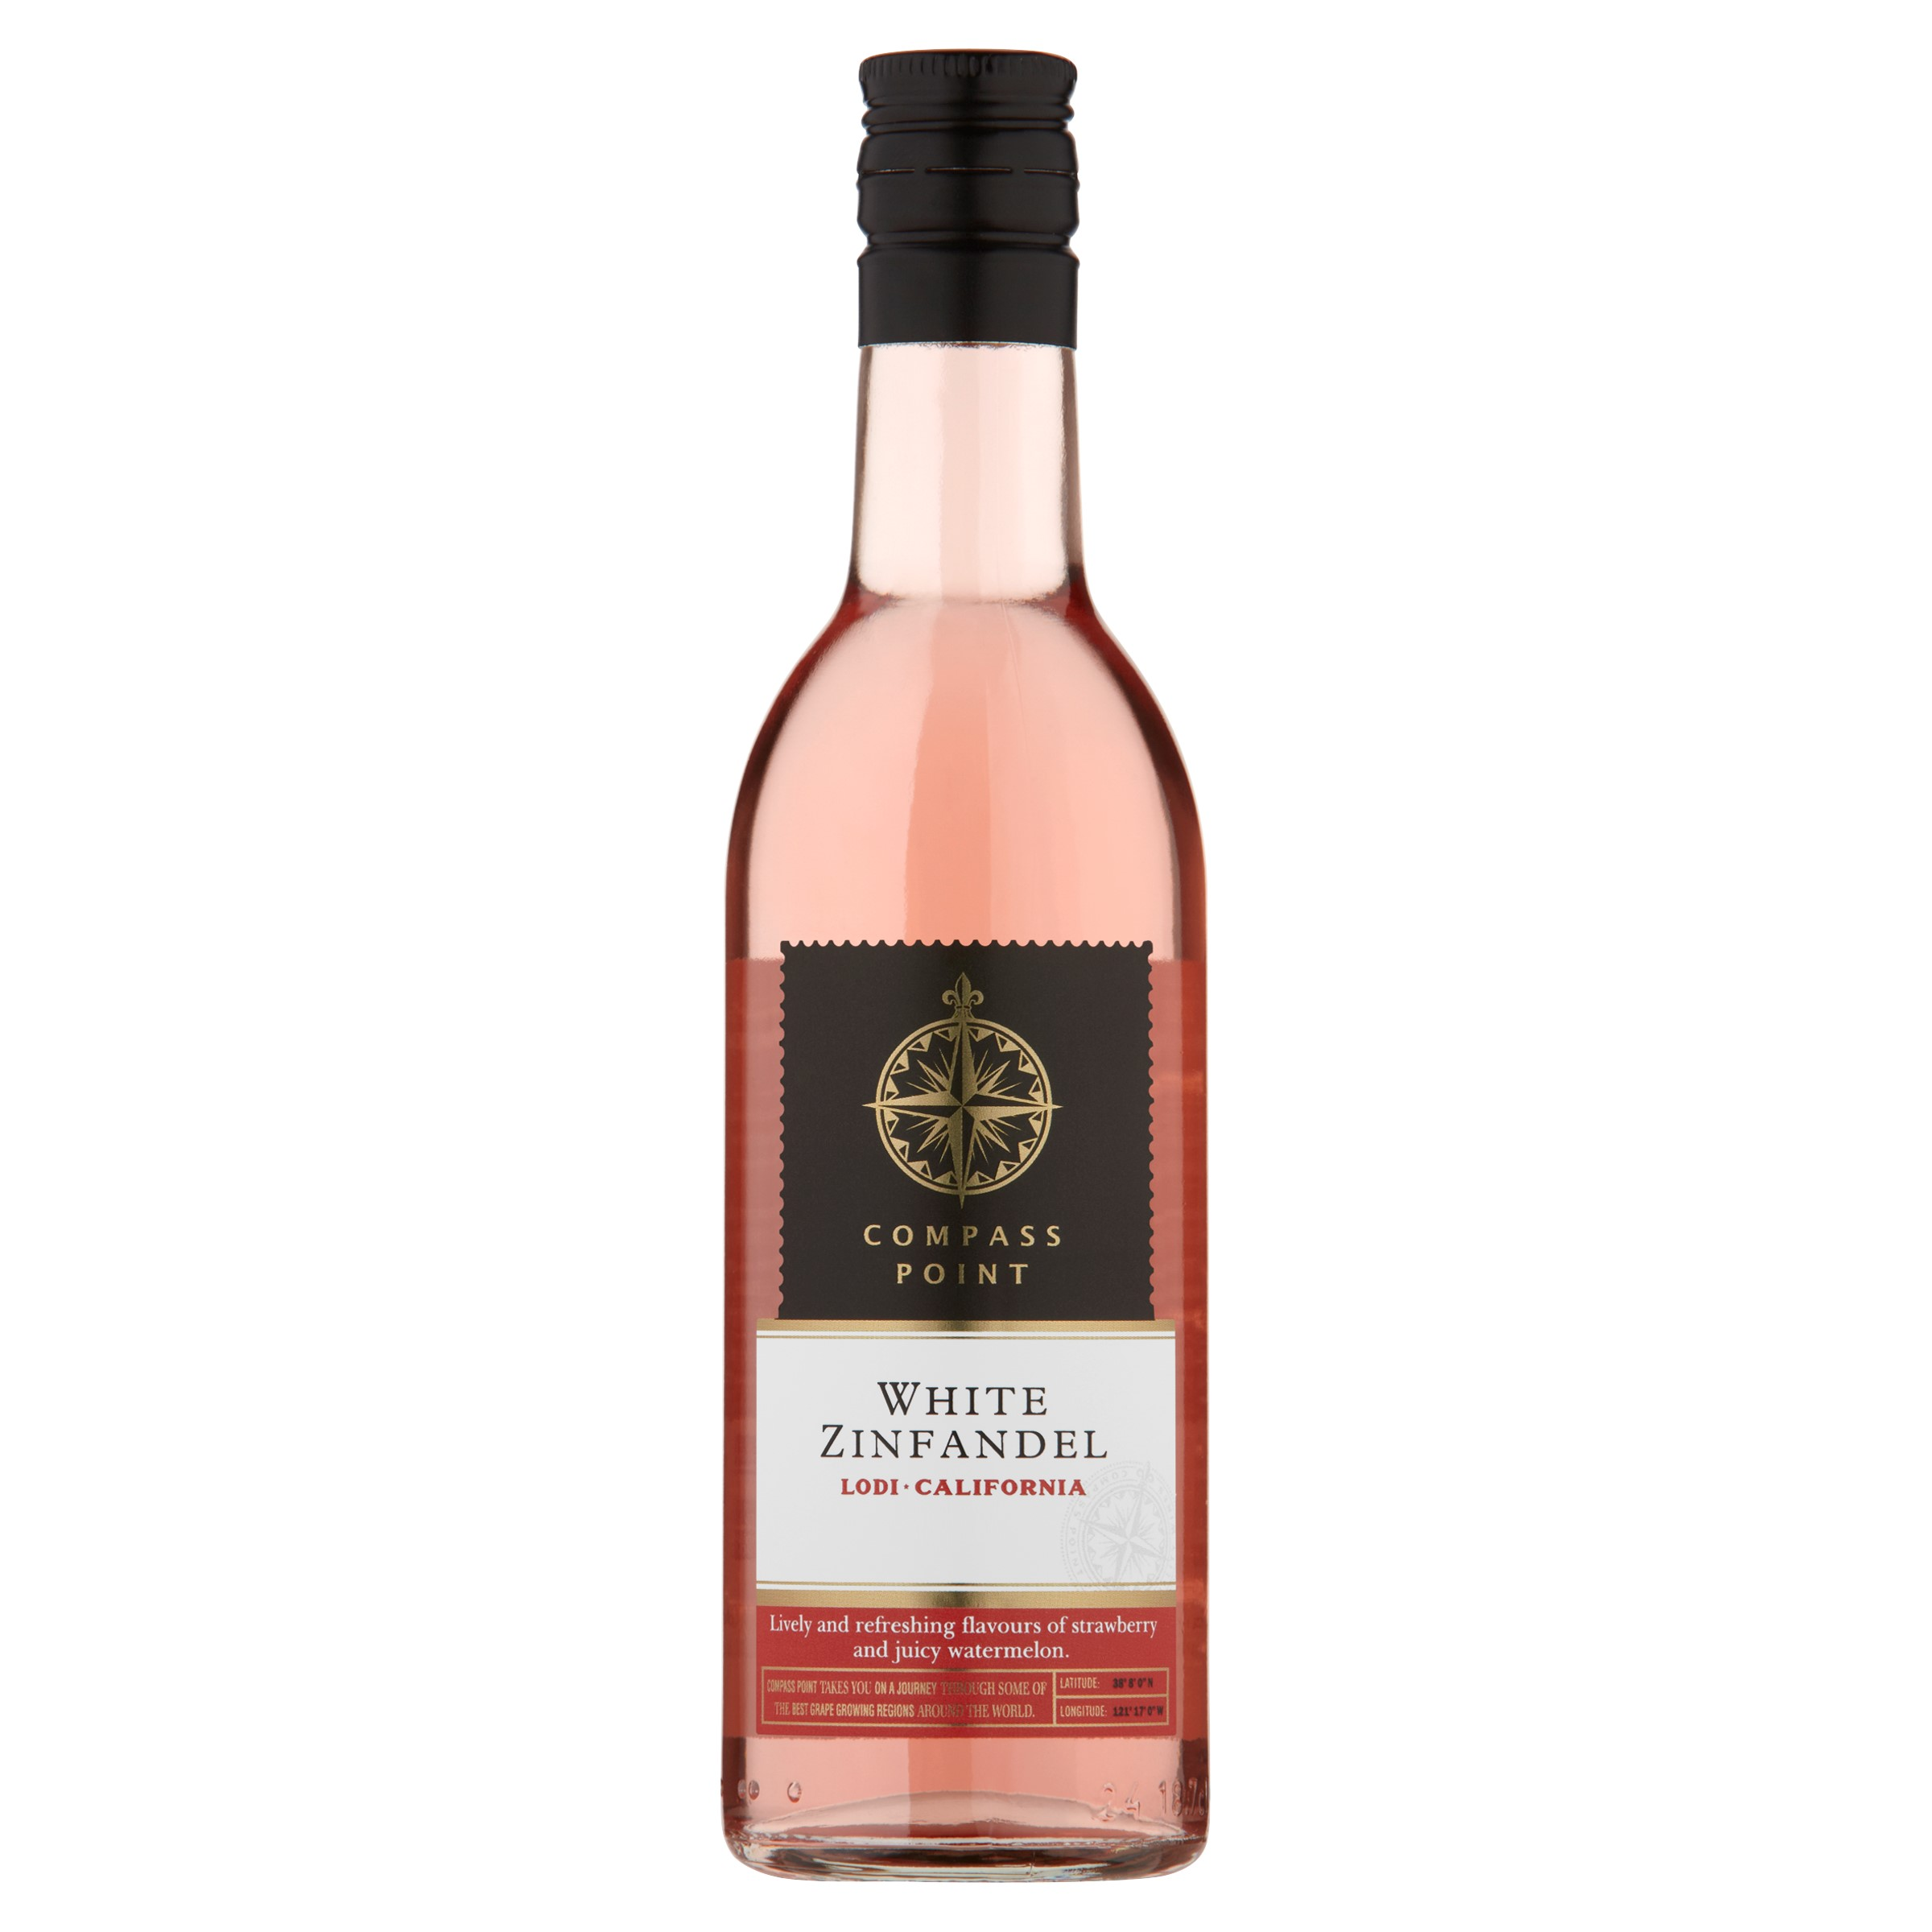 Compass Point White Zinfandel 12 x 187ml